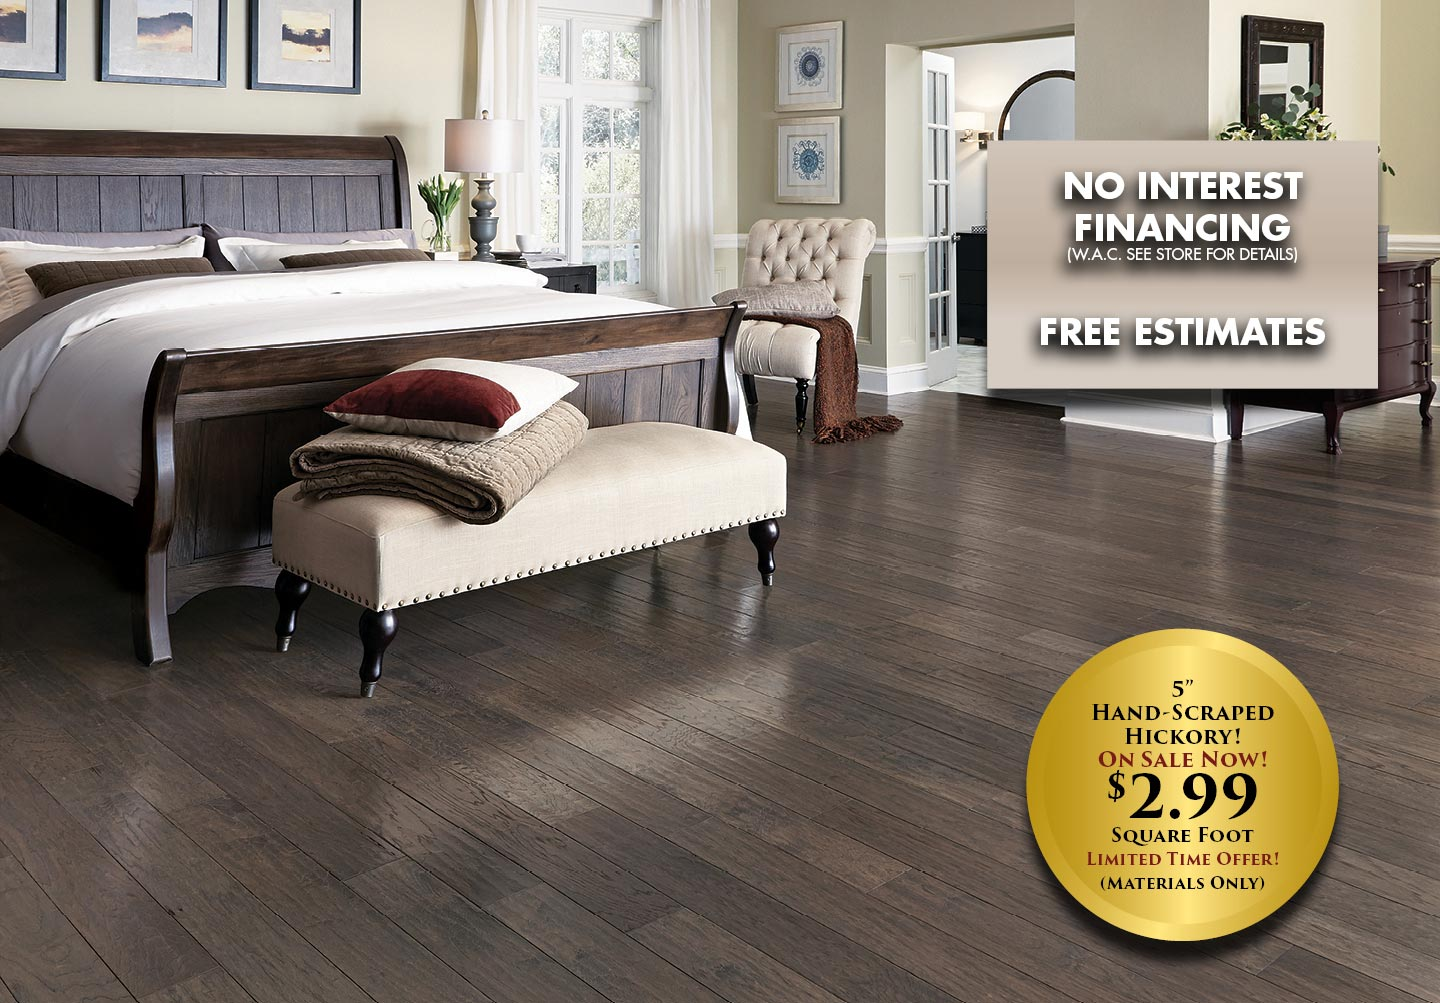 "No Interest Financing - Free Estimates - Get 5% OFF on materials with this ad! 5"" Hickory $2.99 sq.ft. for a limited time!"